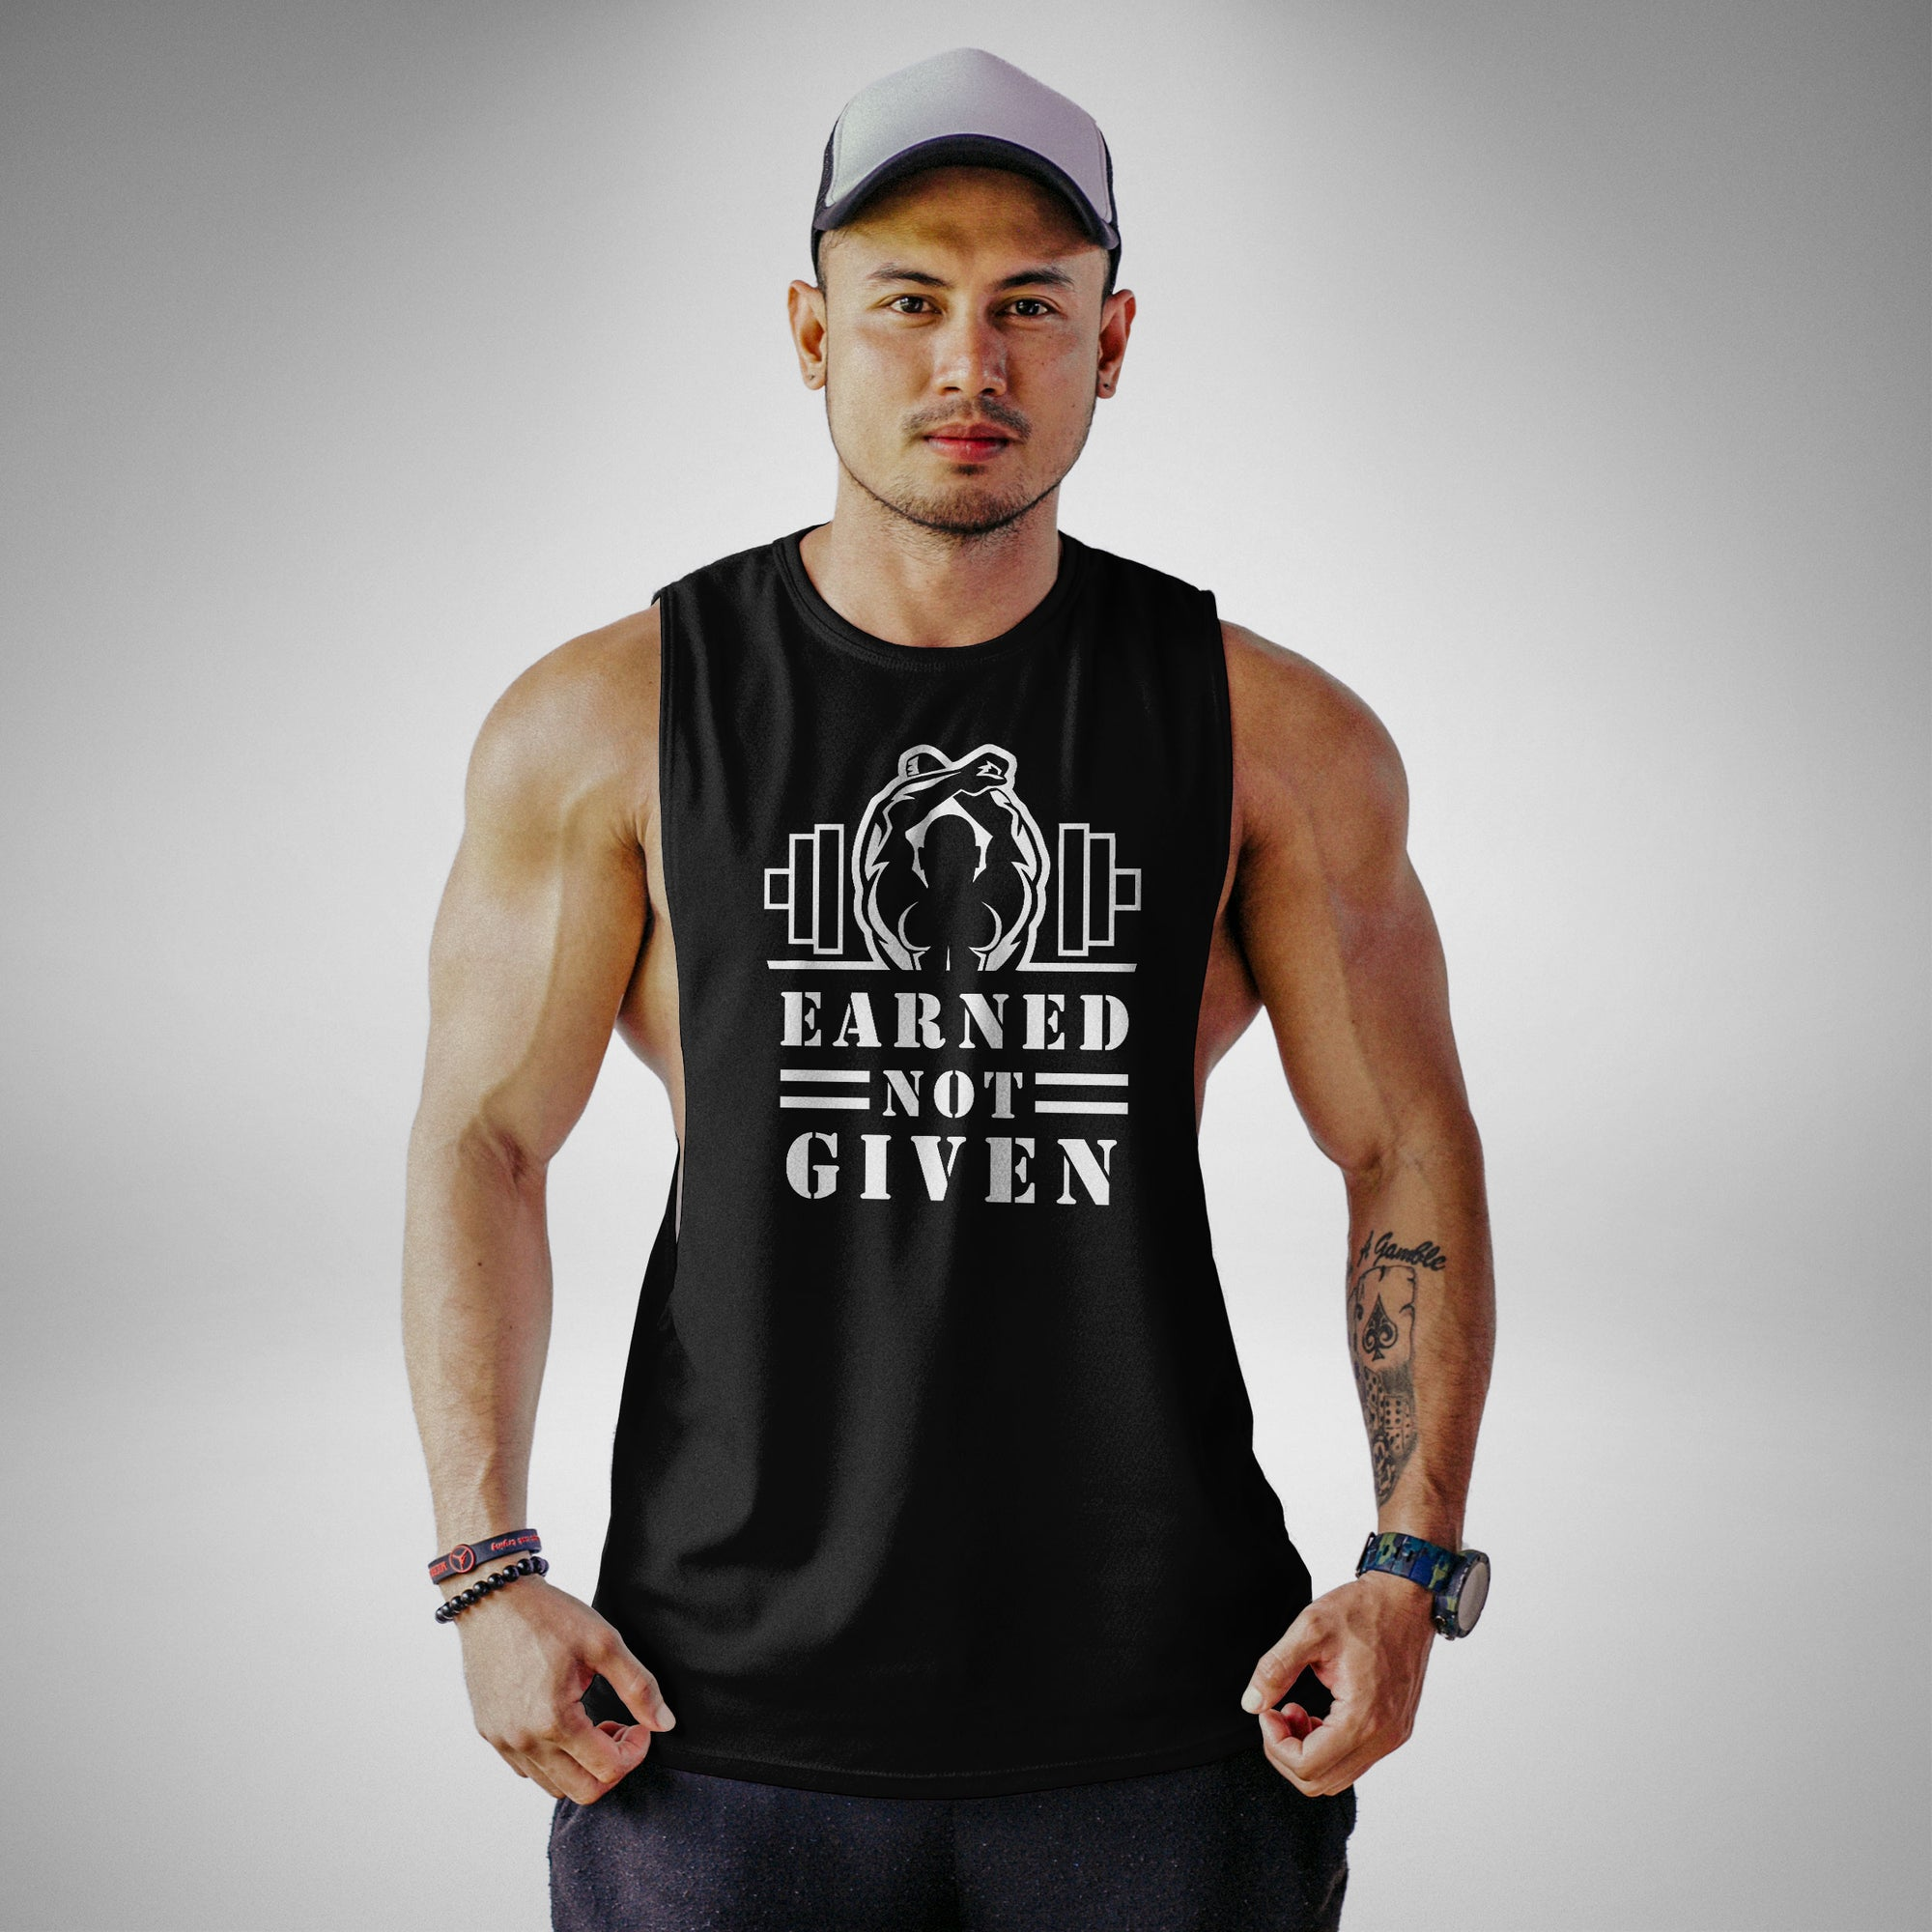 AM106 Earned Not Given Openside Tank Top